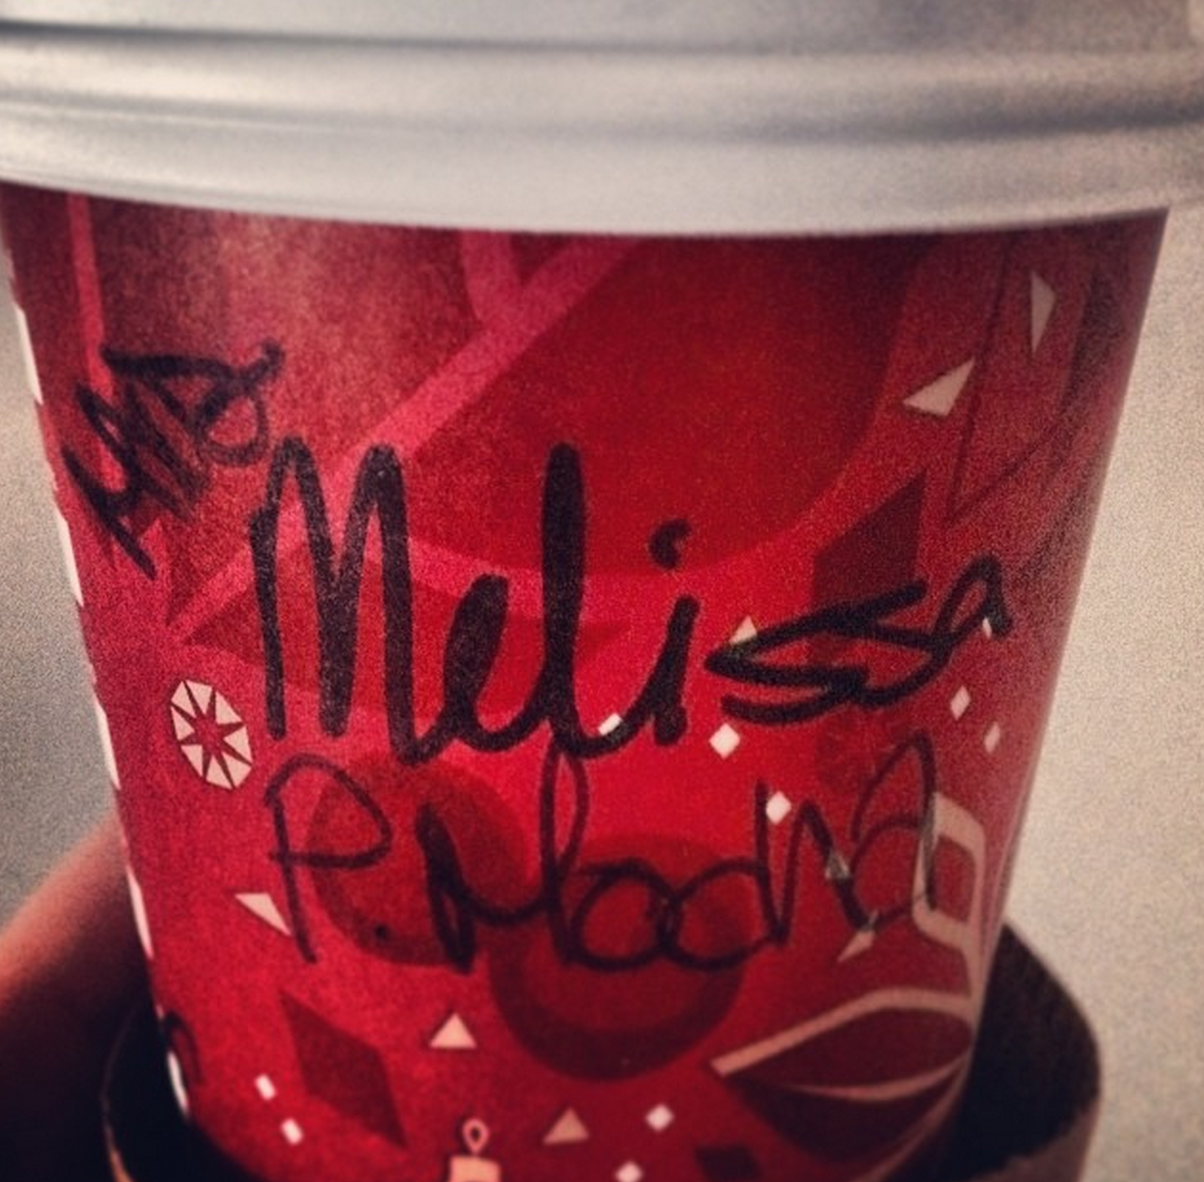 I recently married a peppermint mocha, come on, Starbucks...